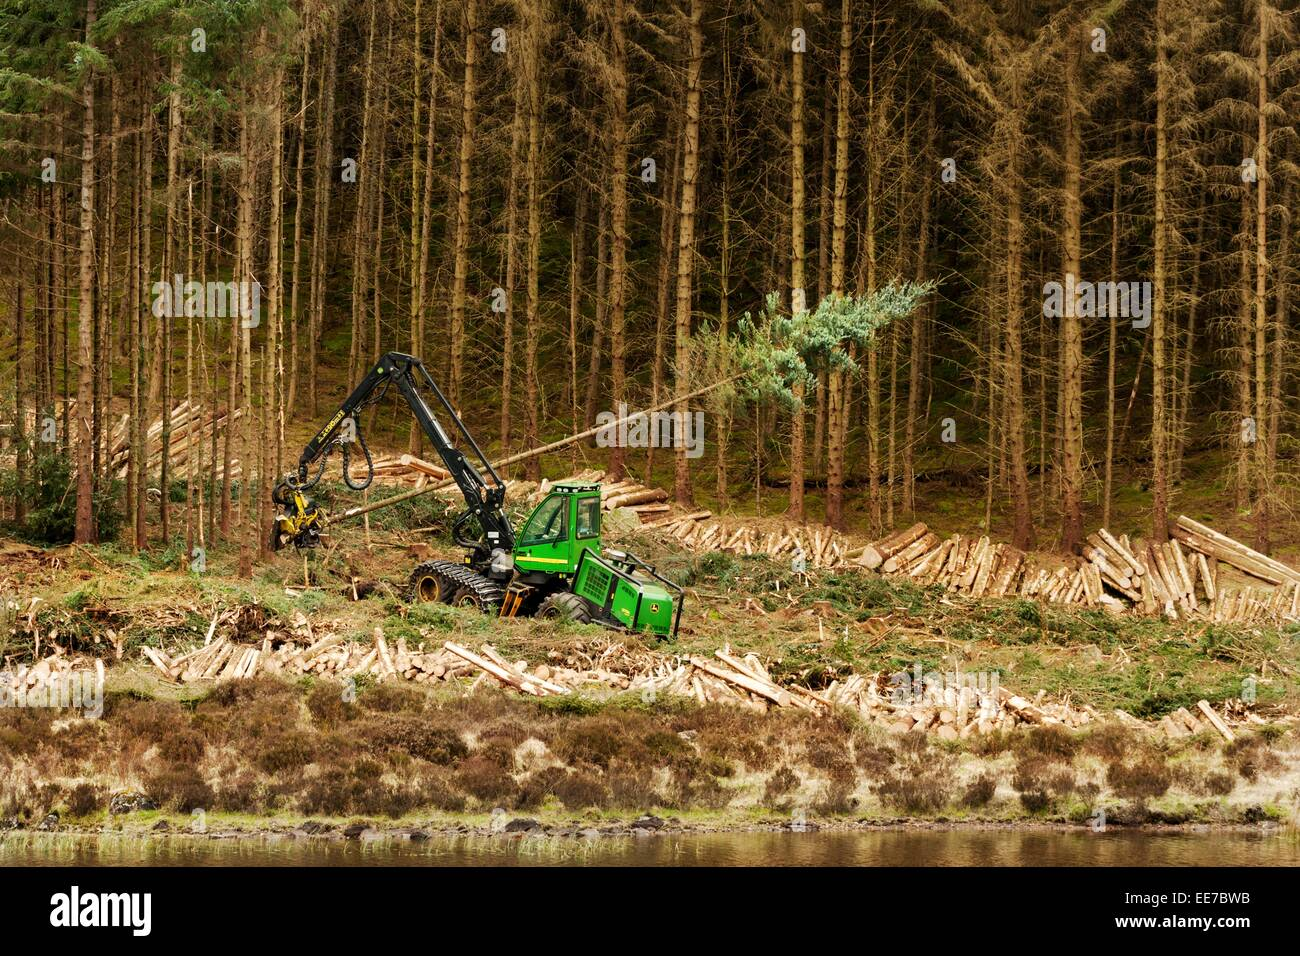 John Deere 1270D Harvester felling timber in a forest in western Scotland.  An example of machinery for harvesting - Stock Image